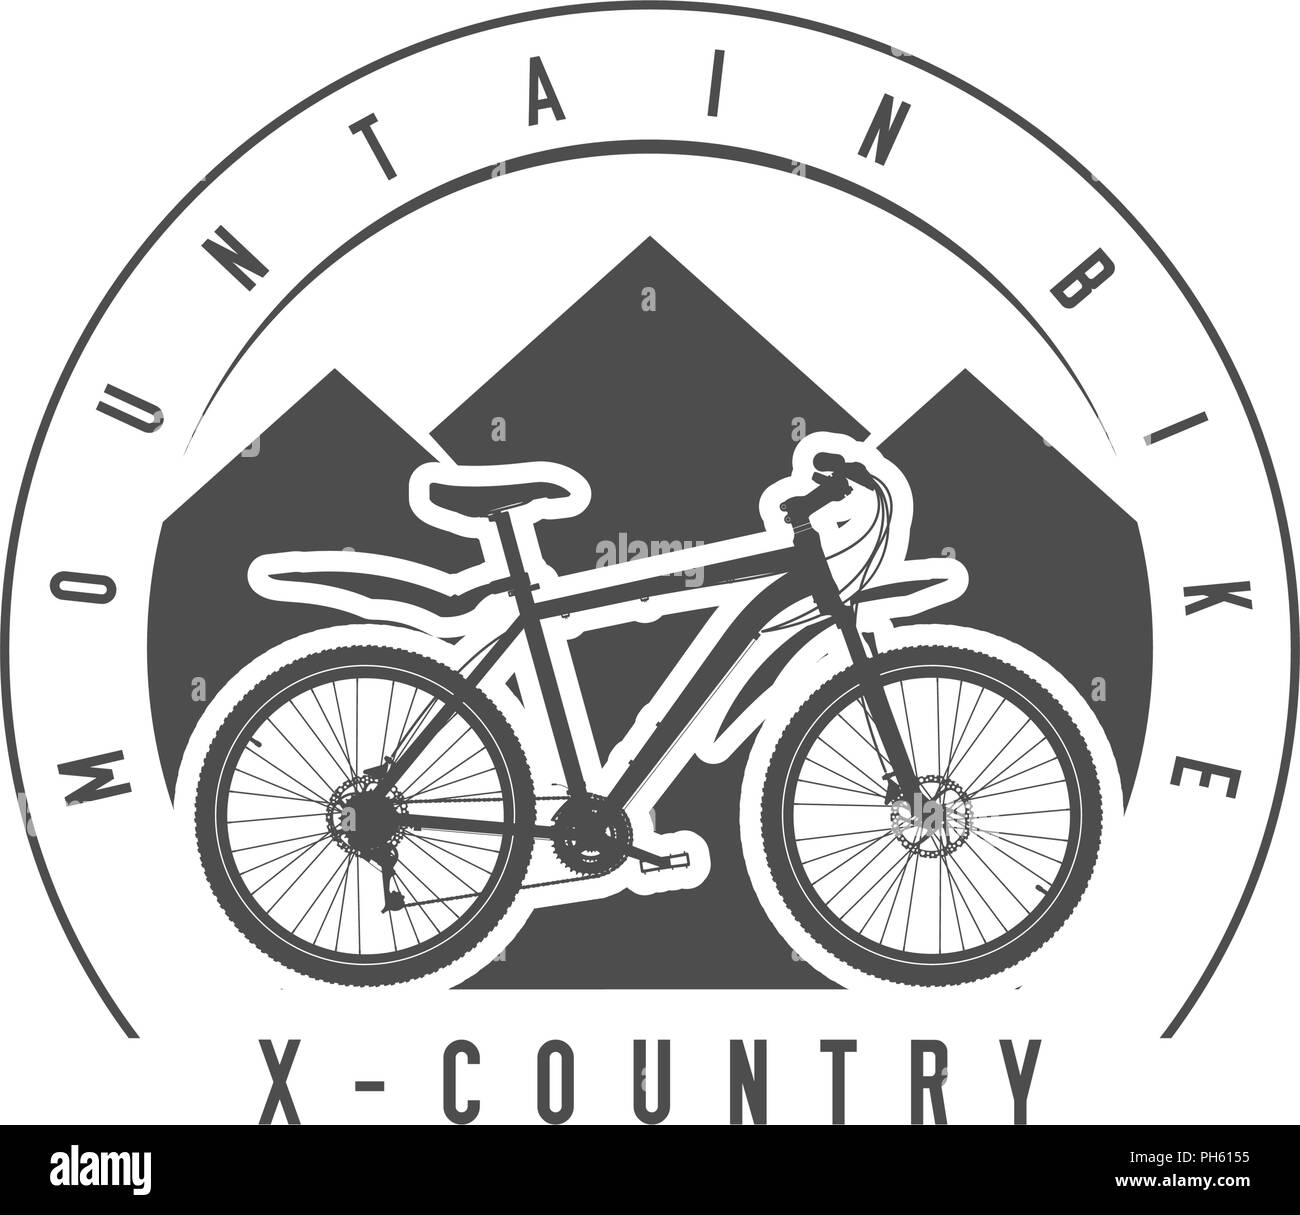 Mountain Bike, Cross-Country Emblem or Badge. Monochrome Vector Illustration. Cross-Country Bicycle Detailed Silhouette. - Stock Image